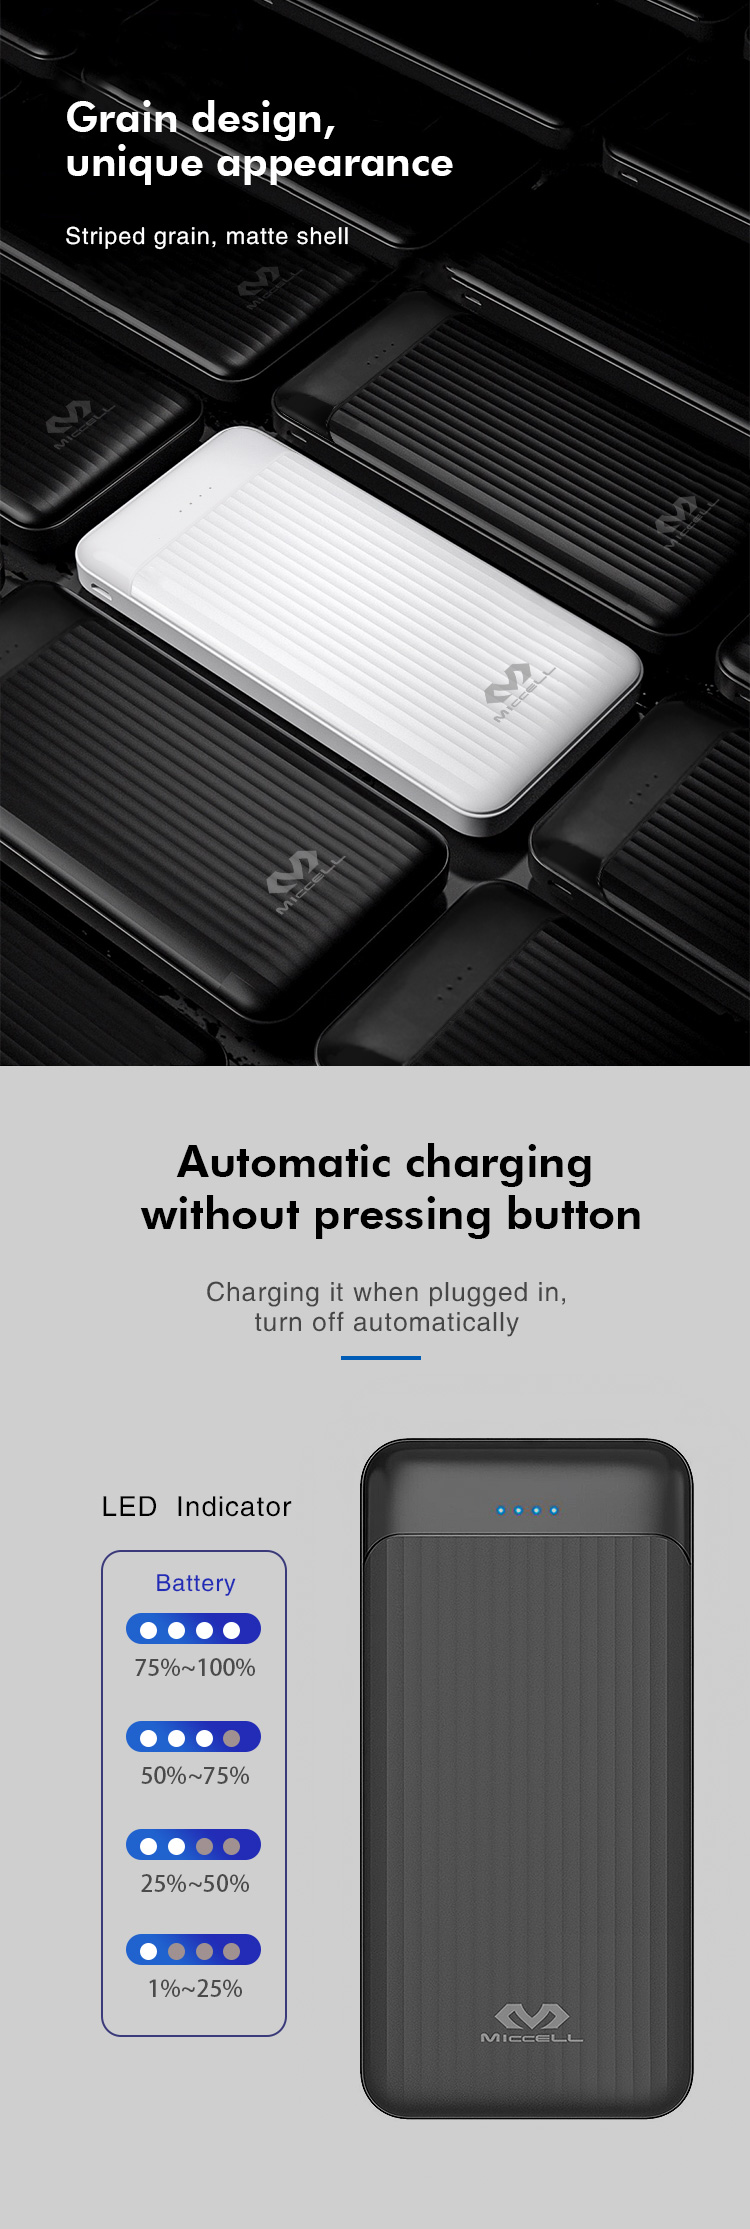 Wholesale smart 20000mah power bank portable charger for iphone (2).jpg